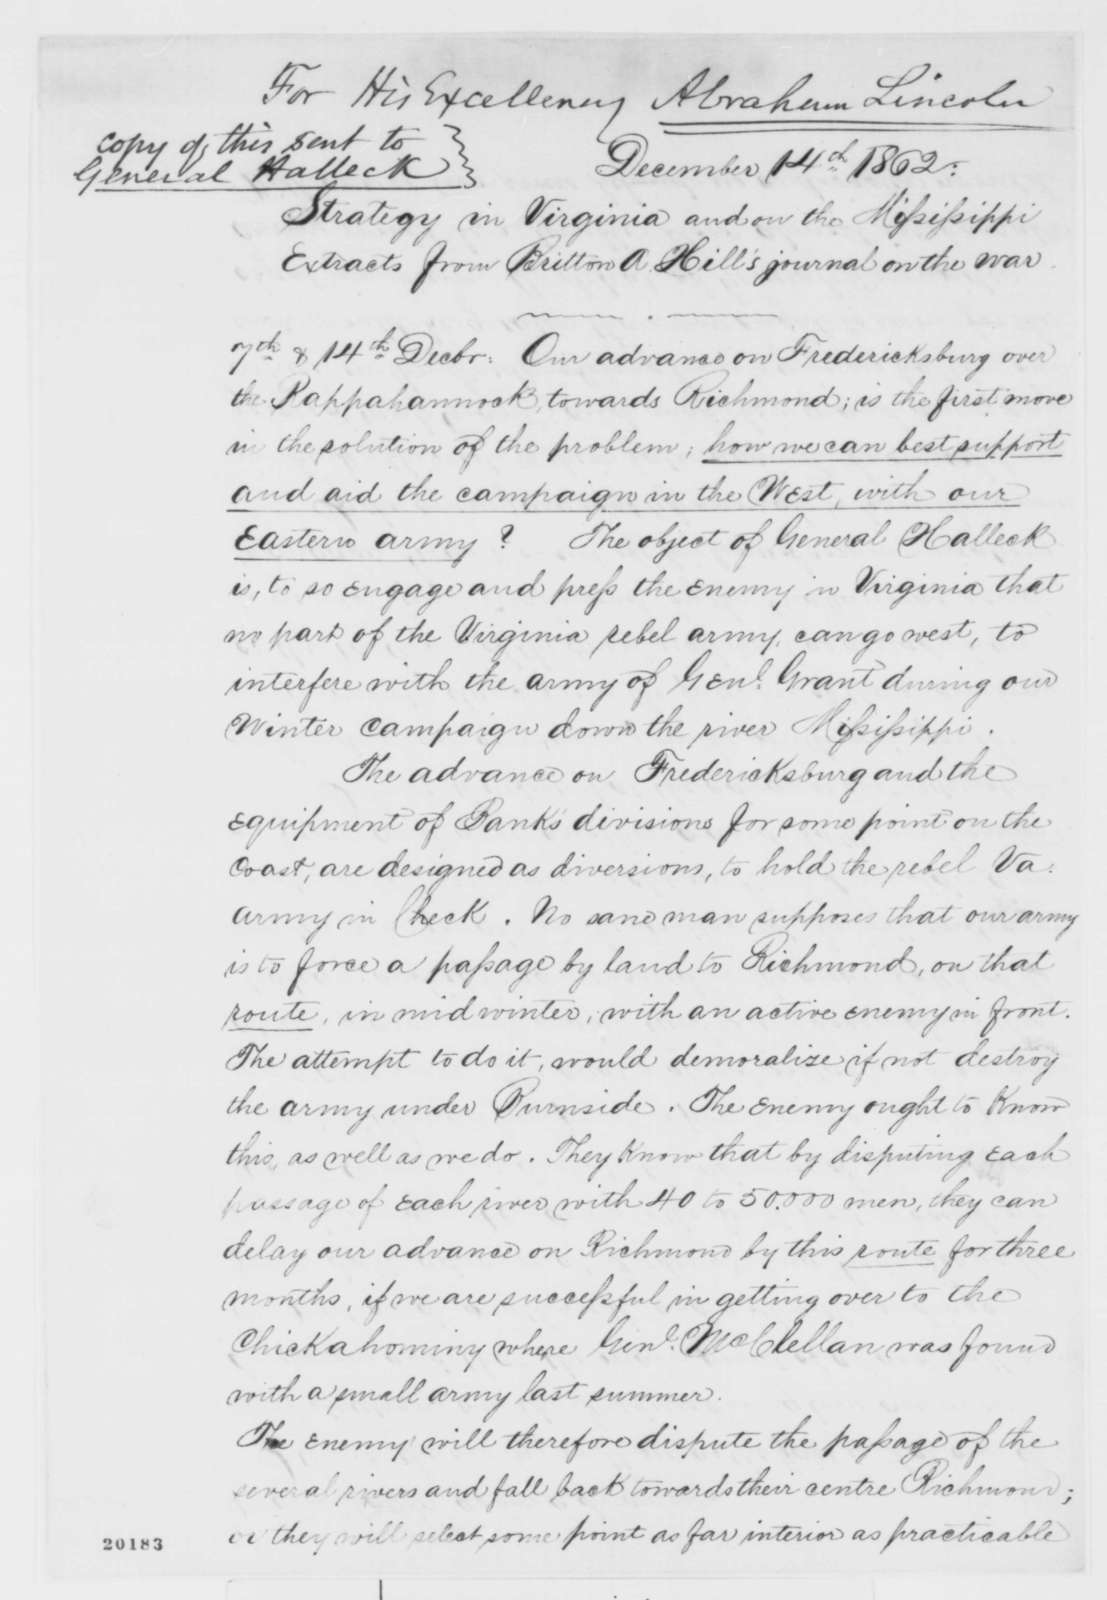 Britton A. Hill to Abraham Lincoln, Monday, December 15, 1862  (Military advice)